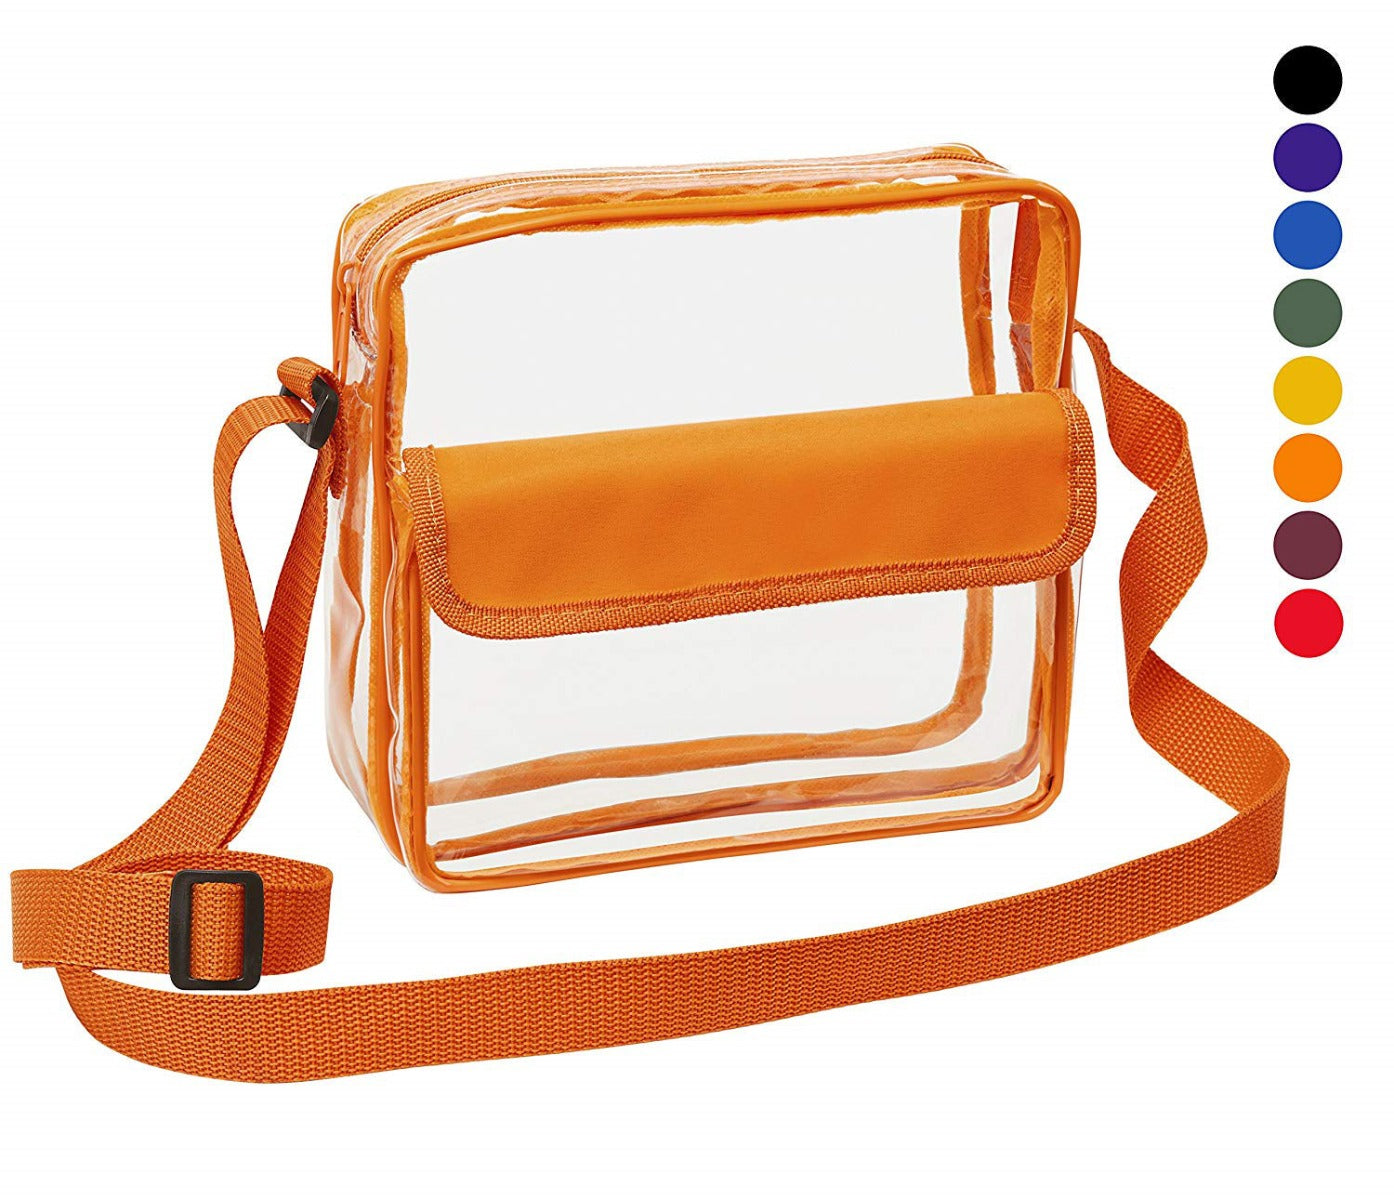 Medium Clear Cross-Body Messenger Shoulder Bag (CH-500-ORG) - Orange Trim